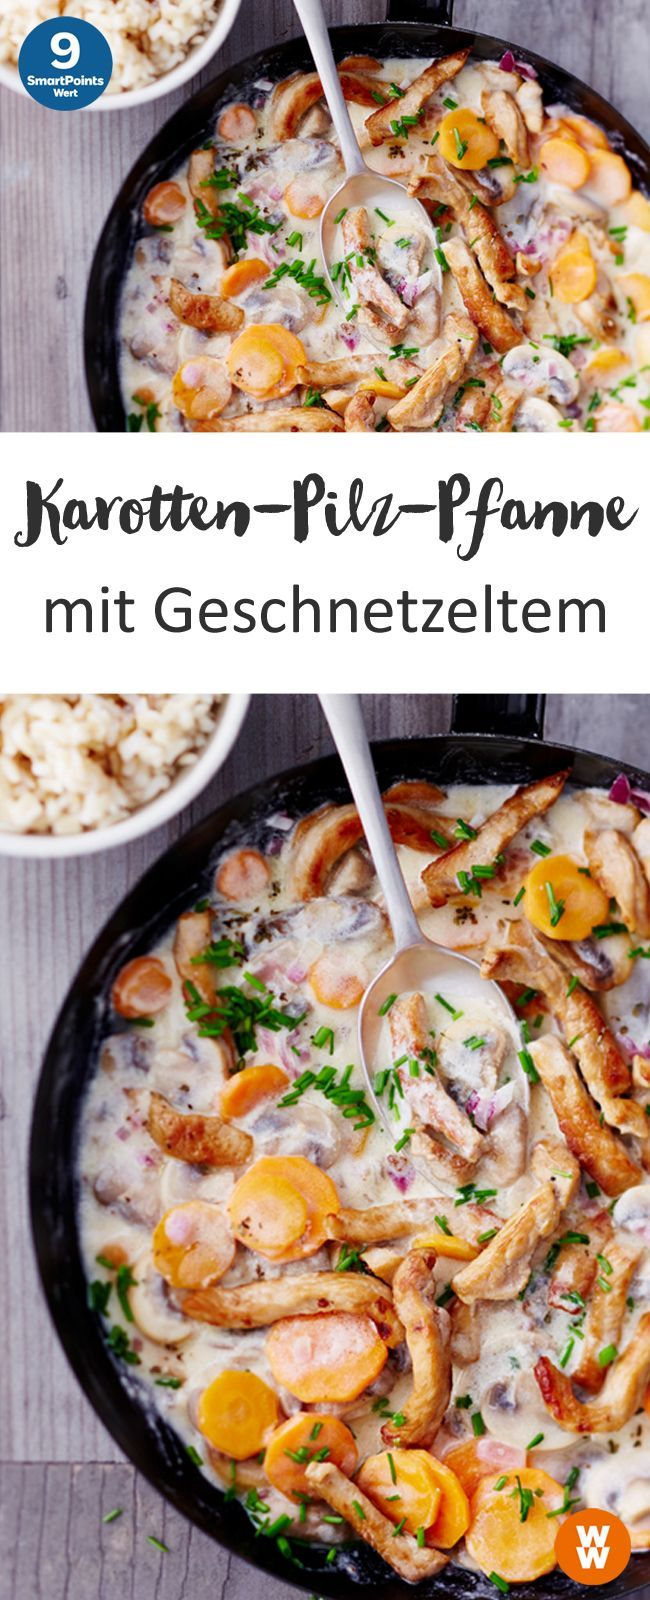 Leckere Karotten-Pilz-Pfanne mit Geschnetzeltem | Weight Watchers (scheduled via http://www.tailwindapp.com?utm_source=pinterest&utm_medium=twpin&utm_content=post132790547&utm_campaign=scheduler_attribution)